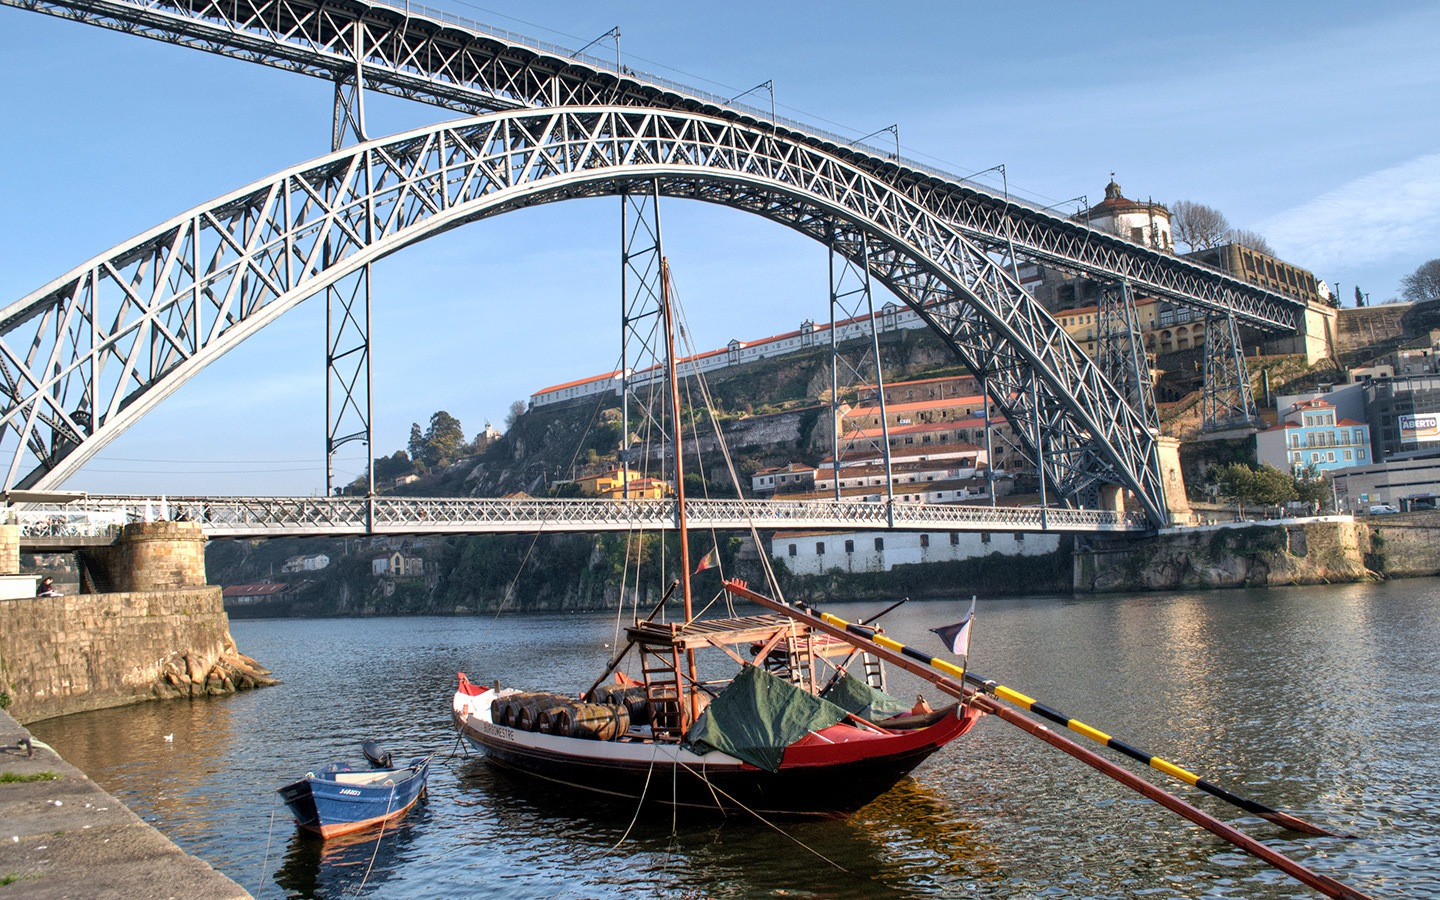 The Dom Luís I bridge in Porto, Portugal